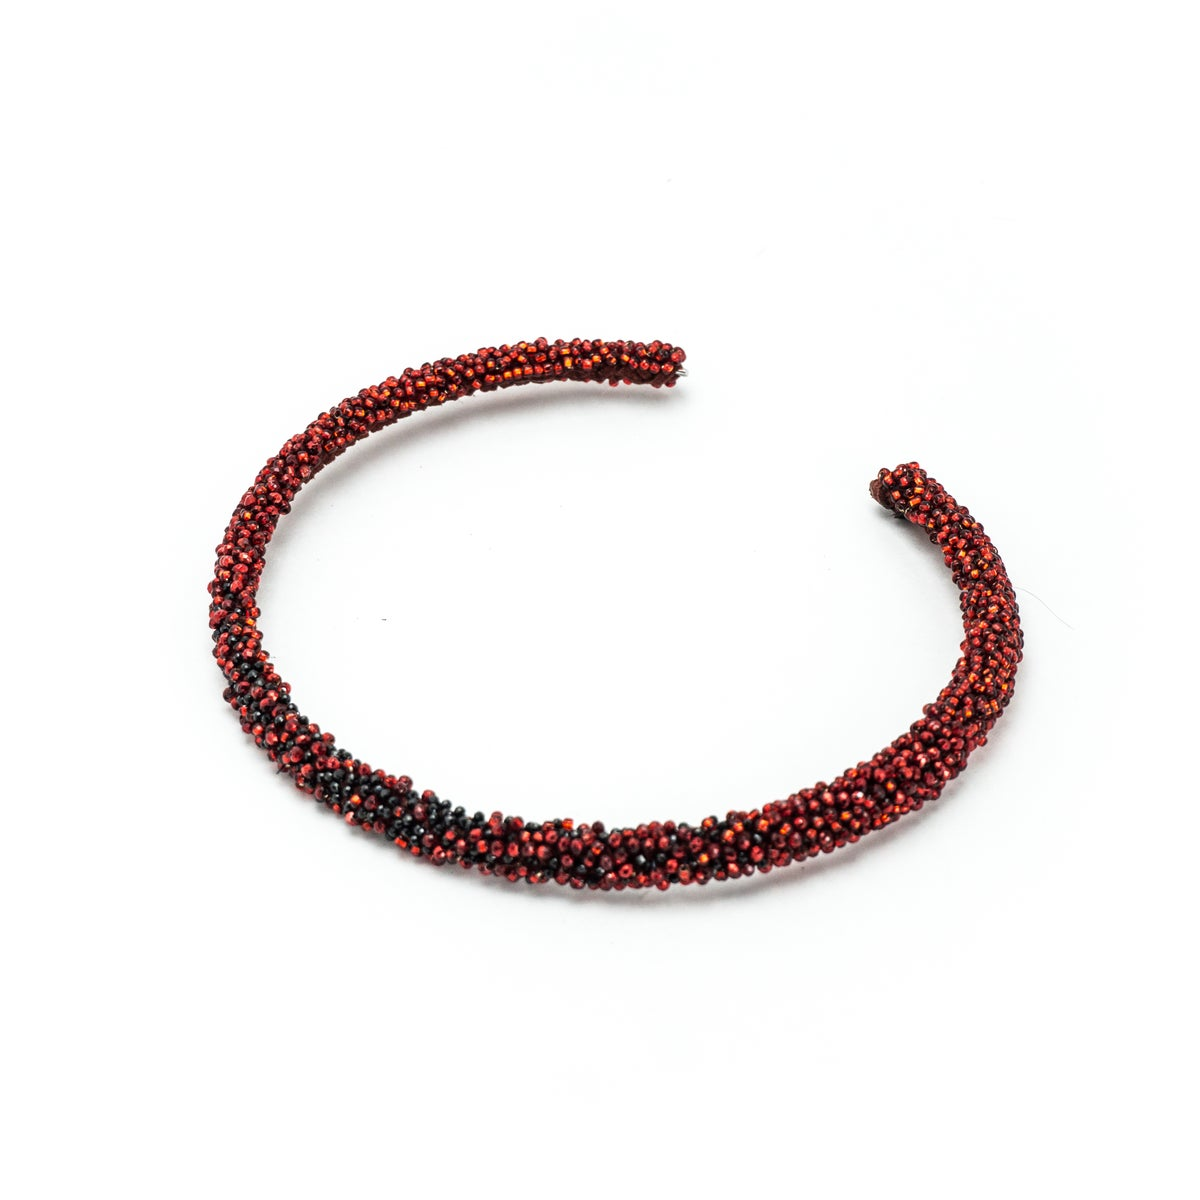 Image of Beaded Braided Choker